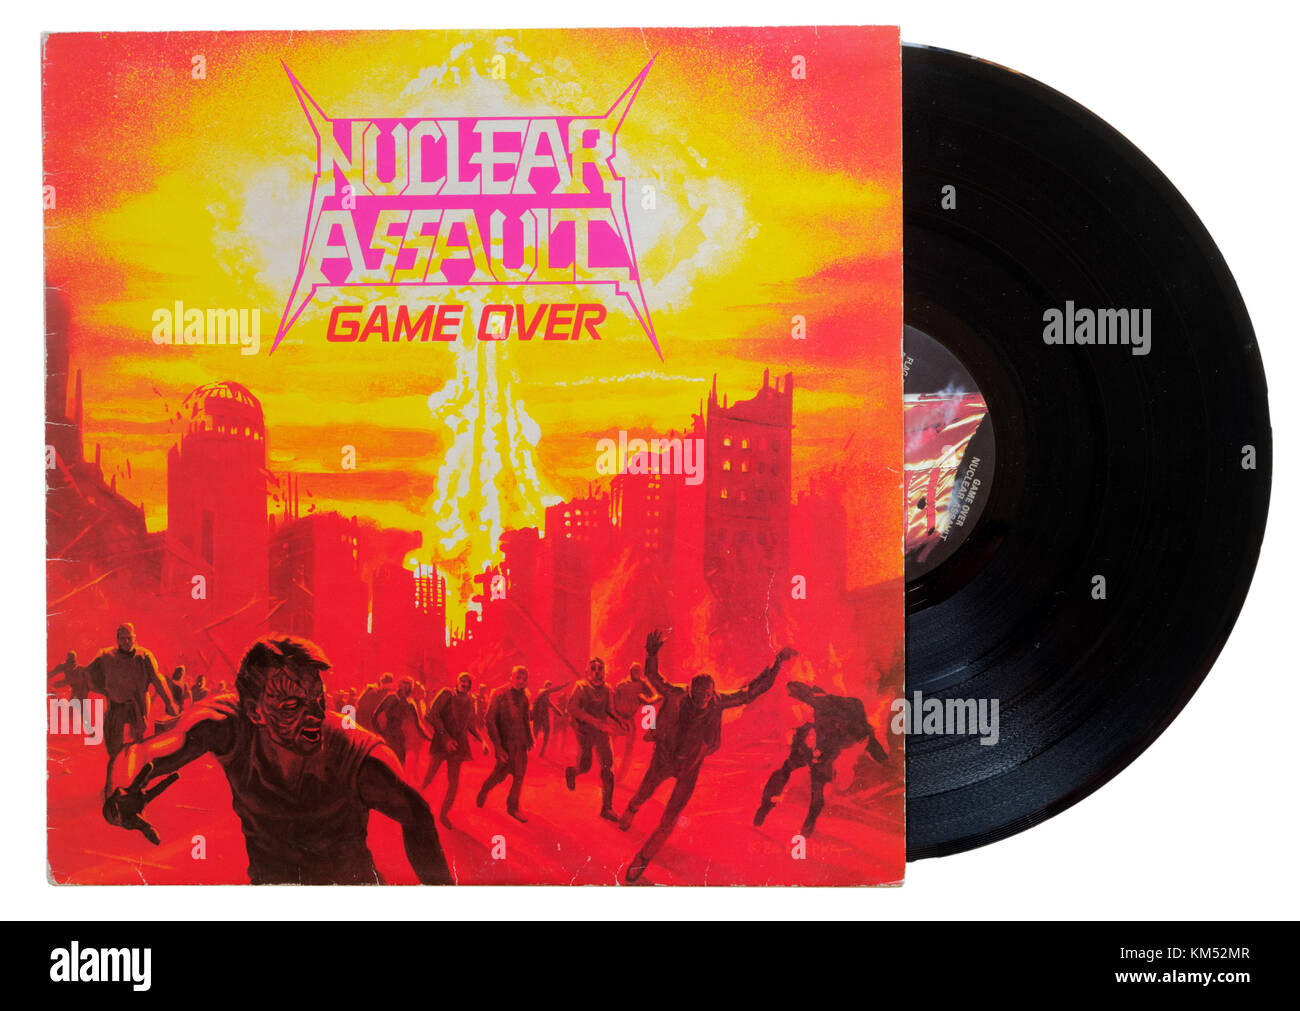 Nuclear Assault Game Over album - Stock Image